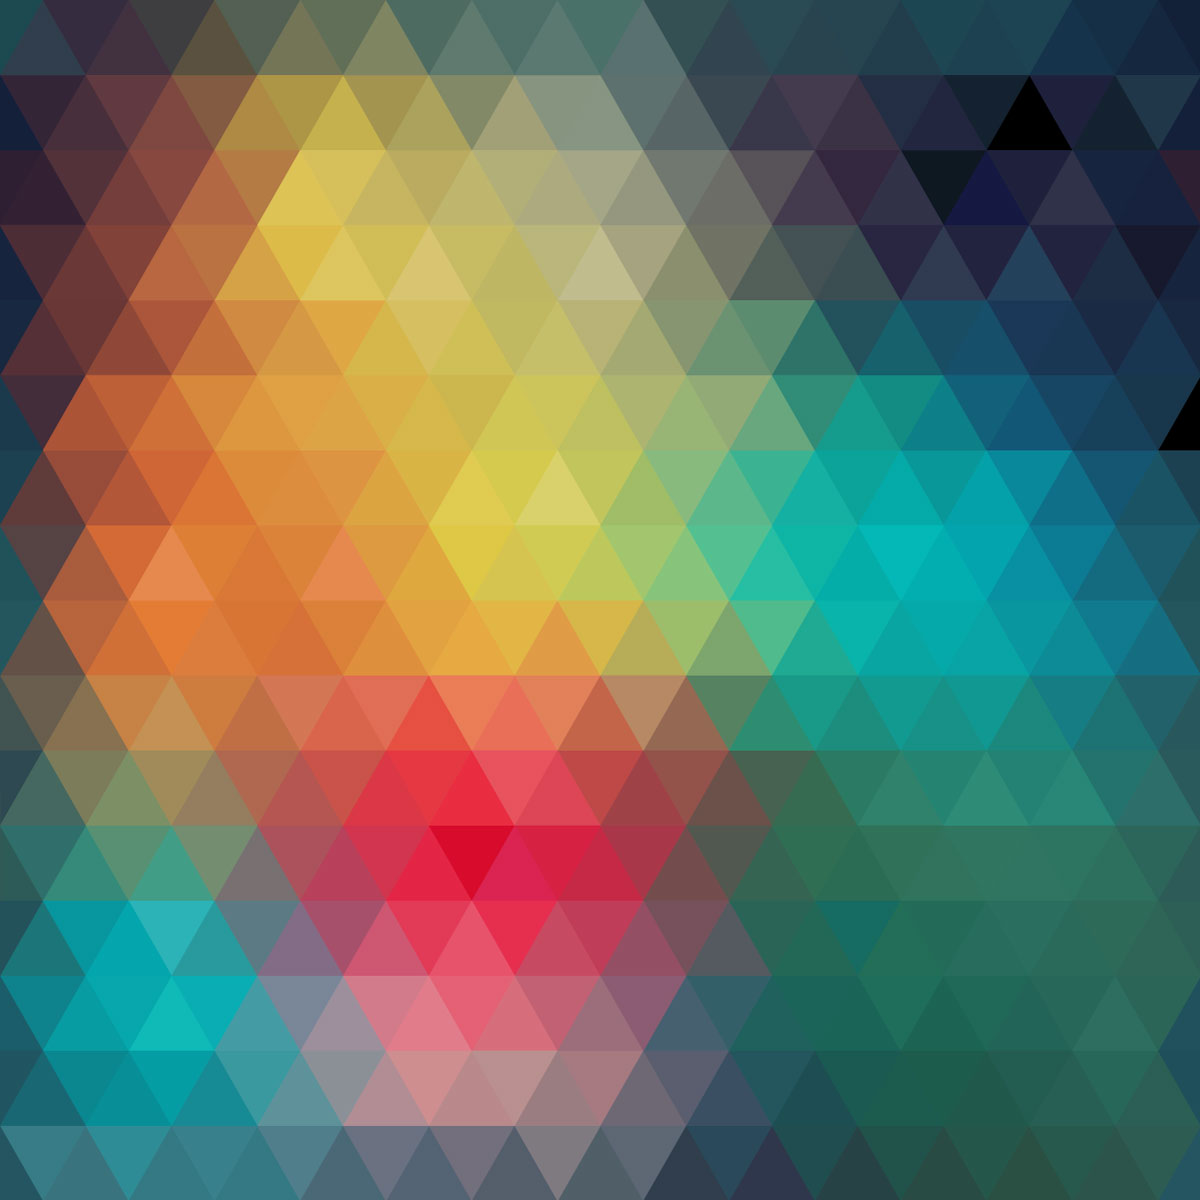 Colorful triangles arranged in decorative abstract background in the 1200x1200